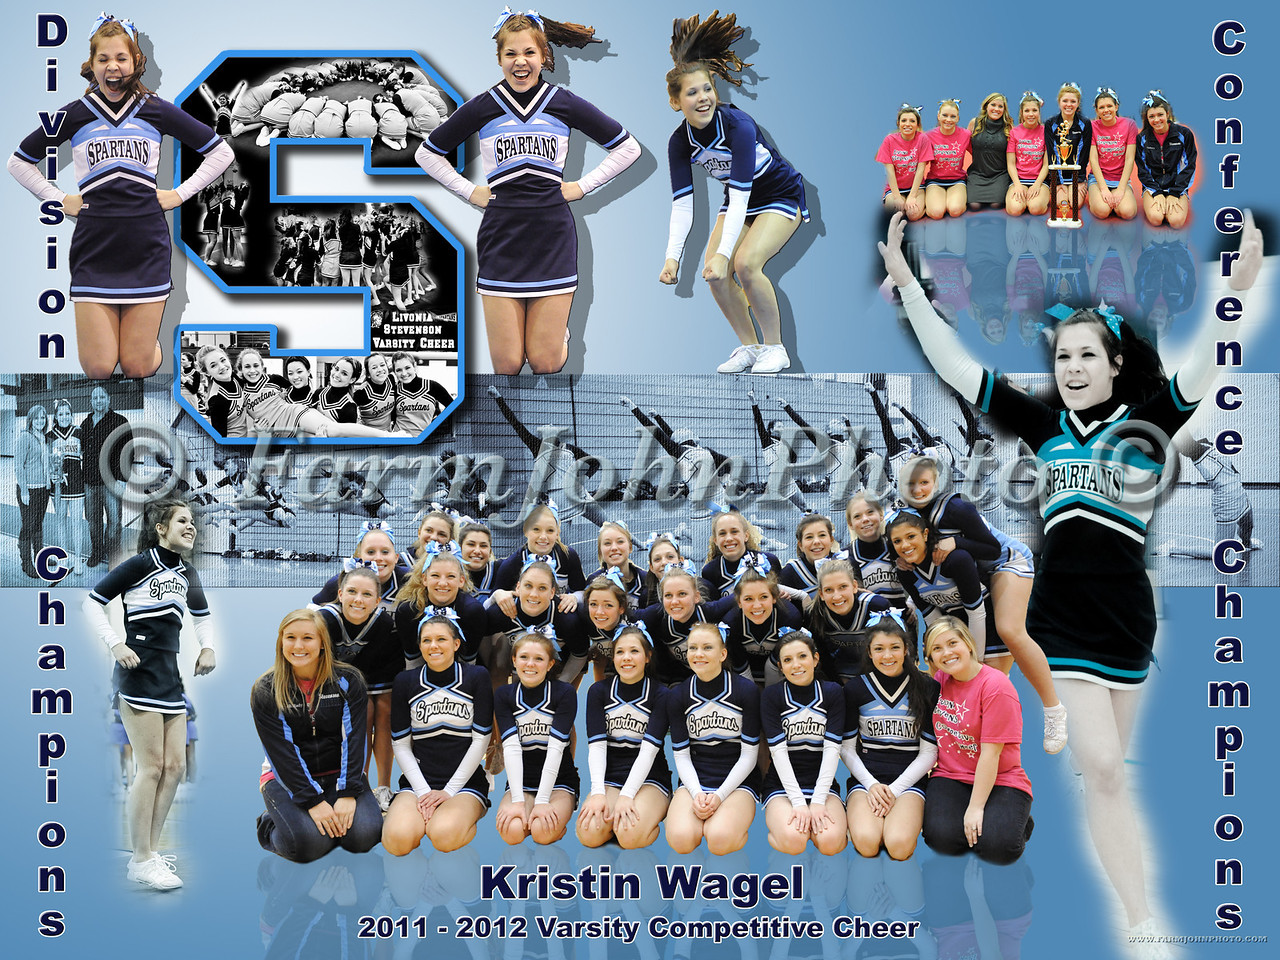 Kristin Wagel 24 x 18 Format Proof 1